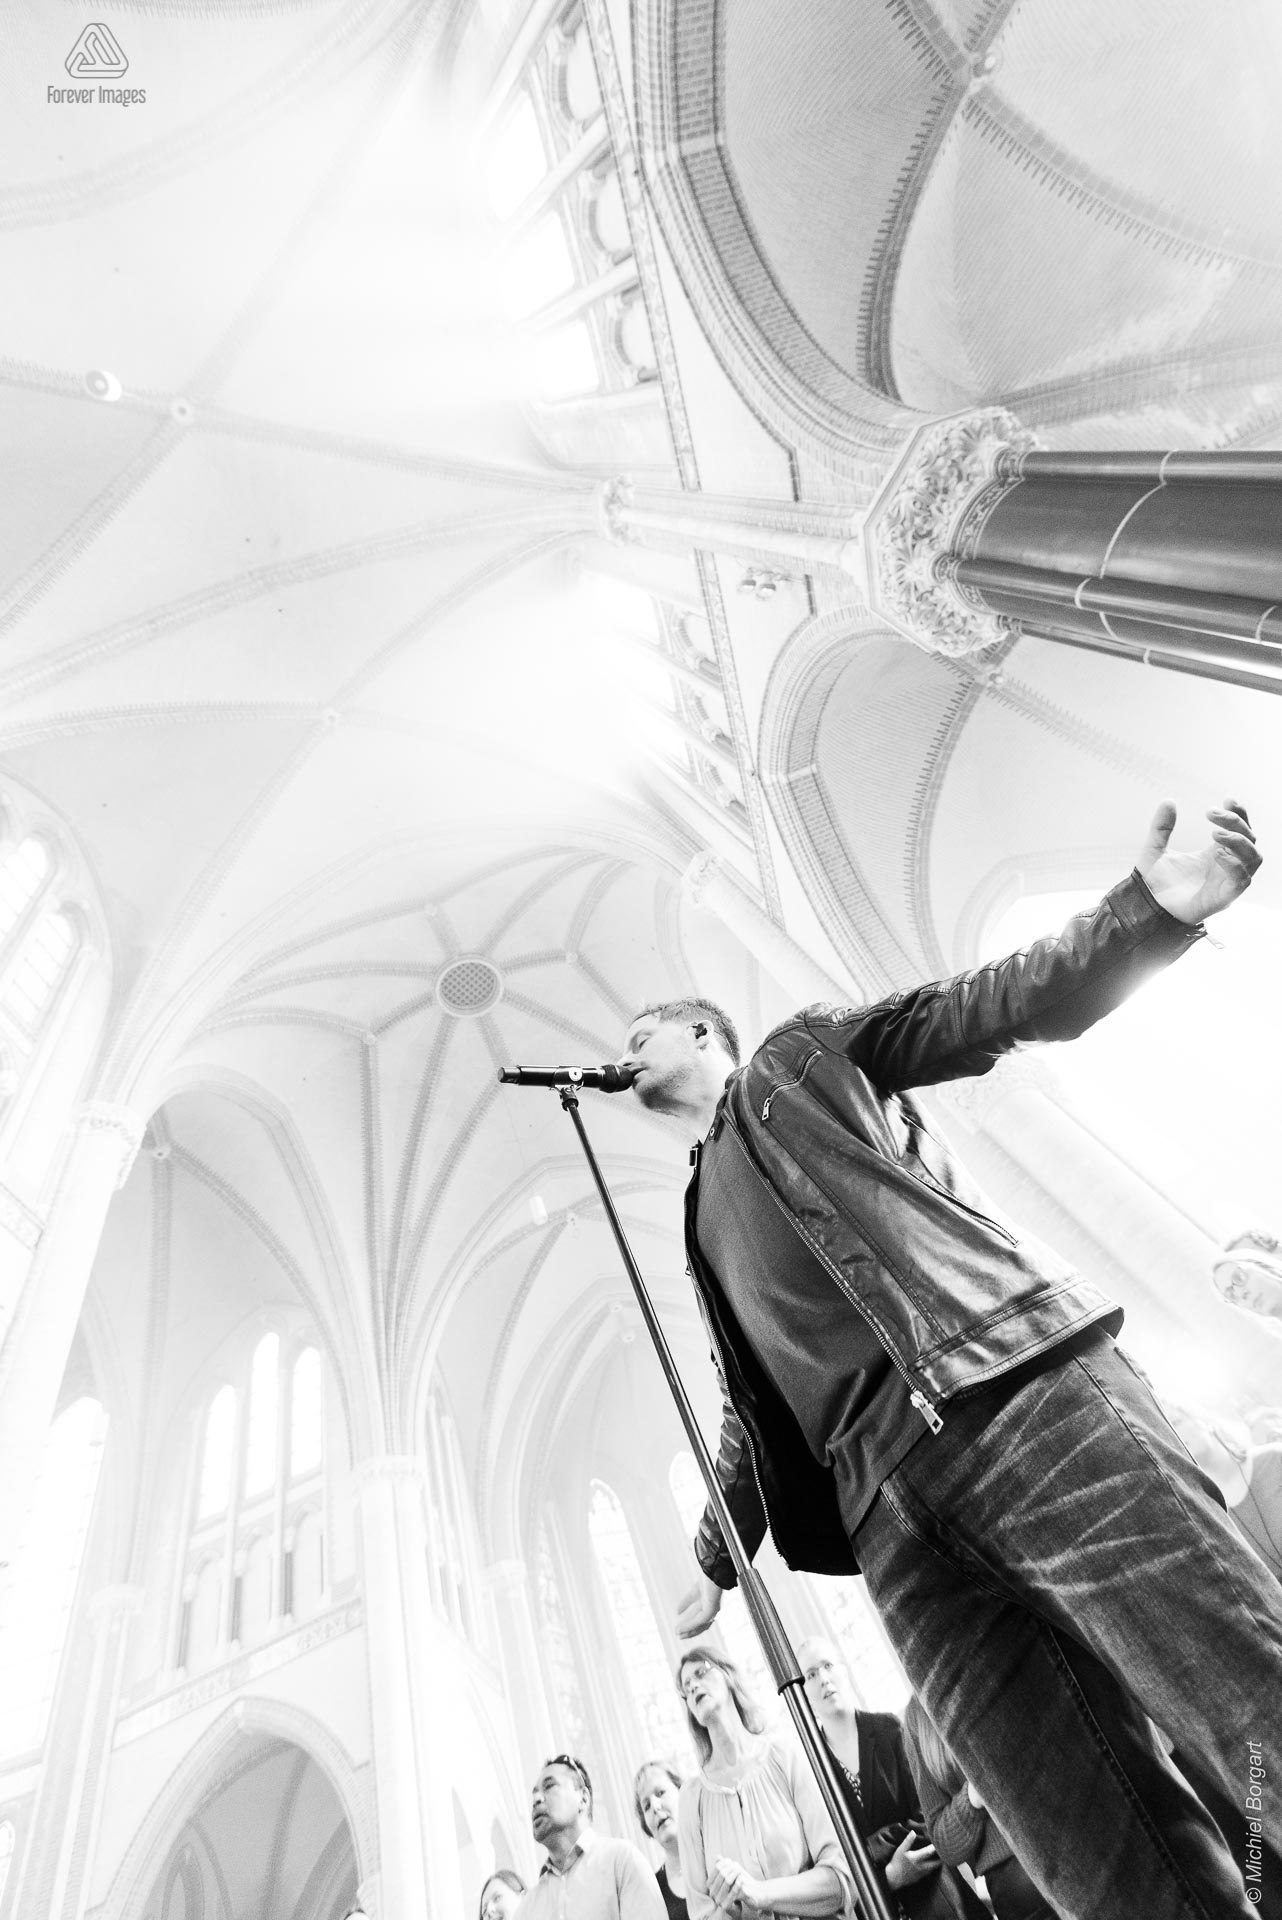 Black and white photo neo-gothic worship leader singer | InSalvation Gouwekerk Gouda Jafeth Bekx | Photographer Michiel Borgart Forever Images.